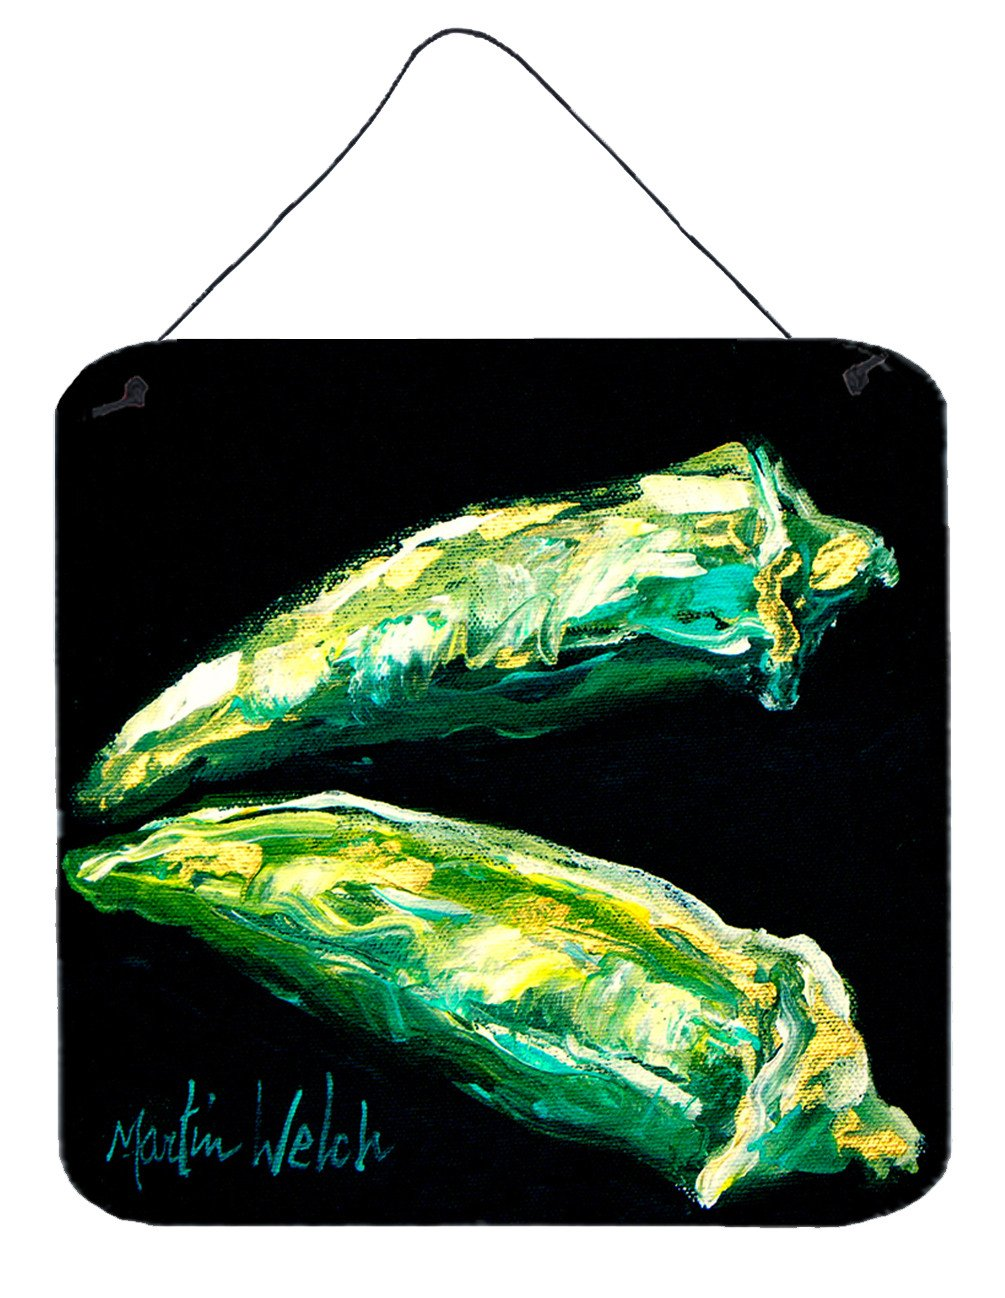 Vegetables - Okra Gumbo Aluminium Metal Wall or Door Hanging Prints by Caroline's Treasures